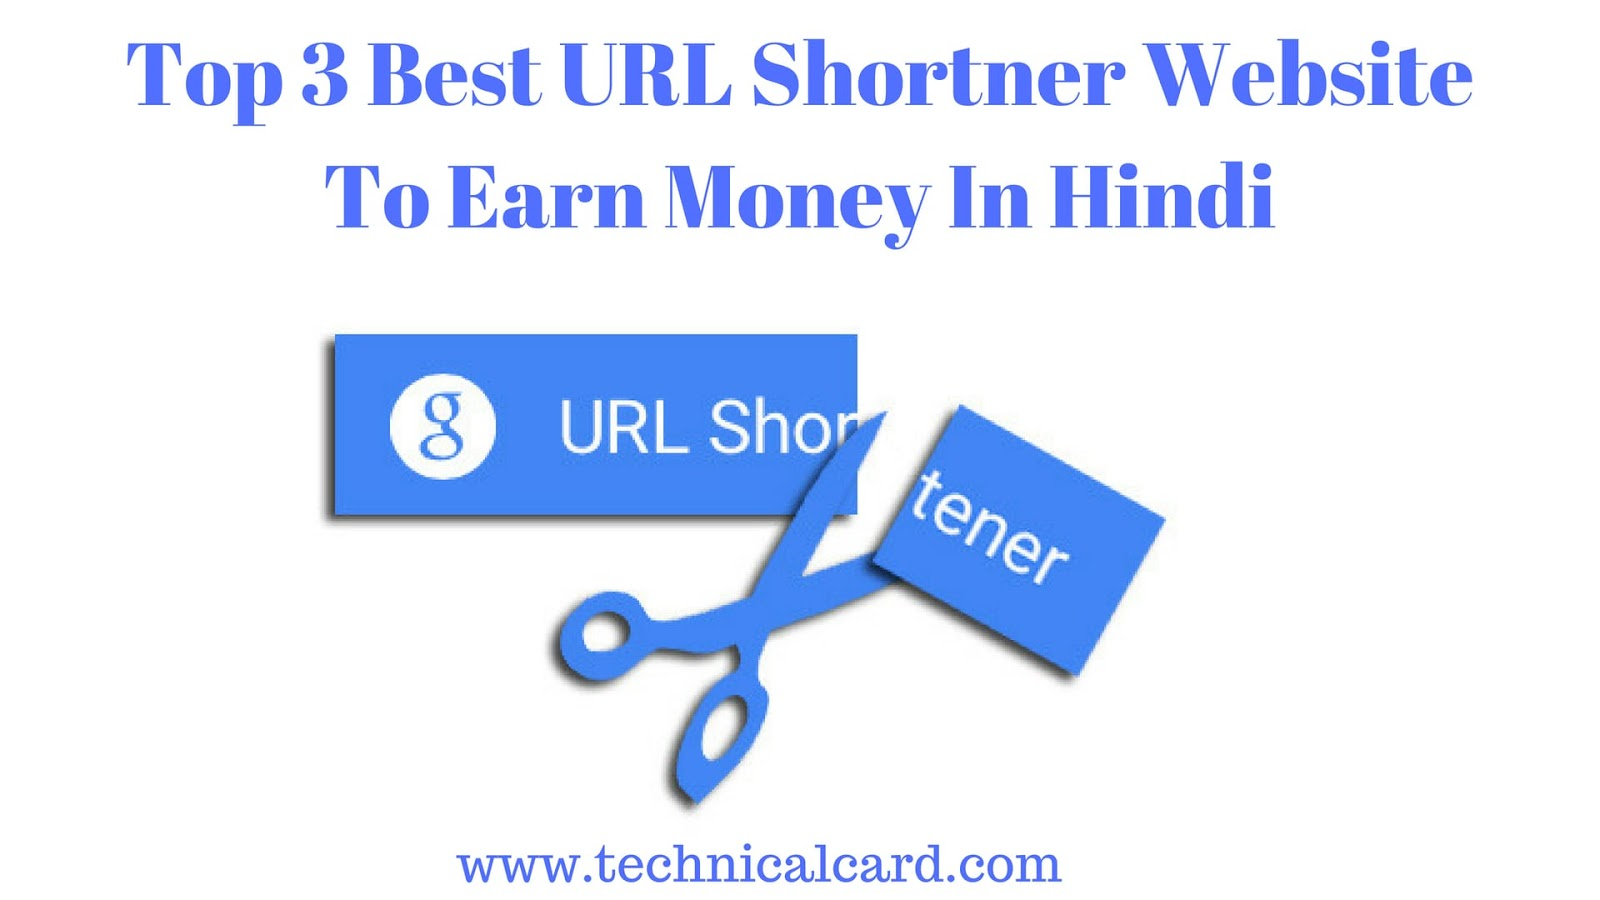 Top 3 Best URL Shortner Website To Earn Money In Hindi